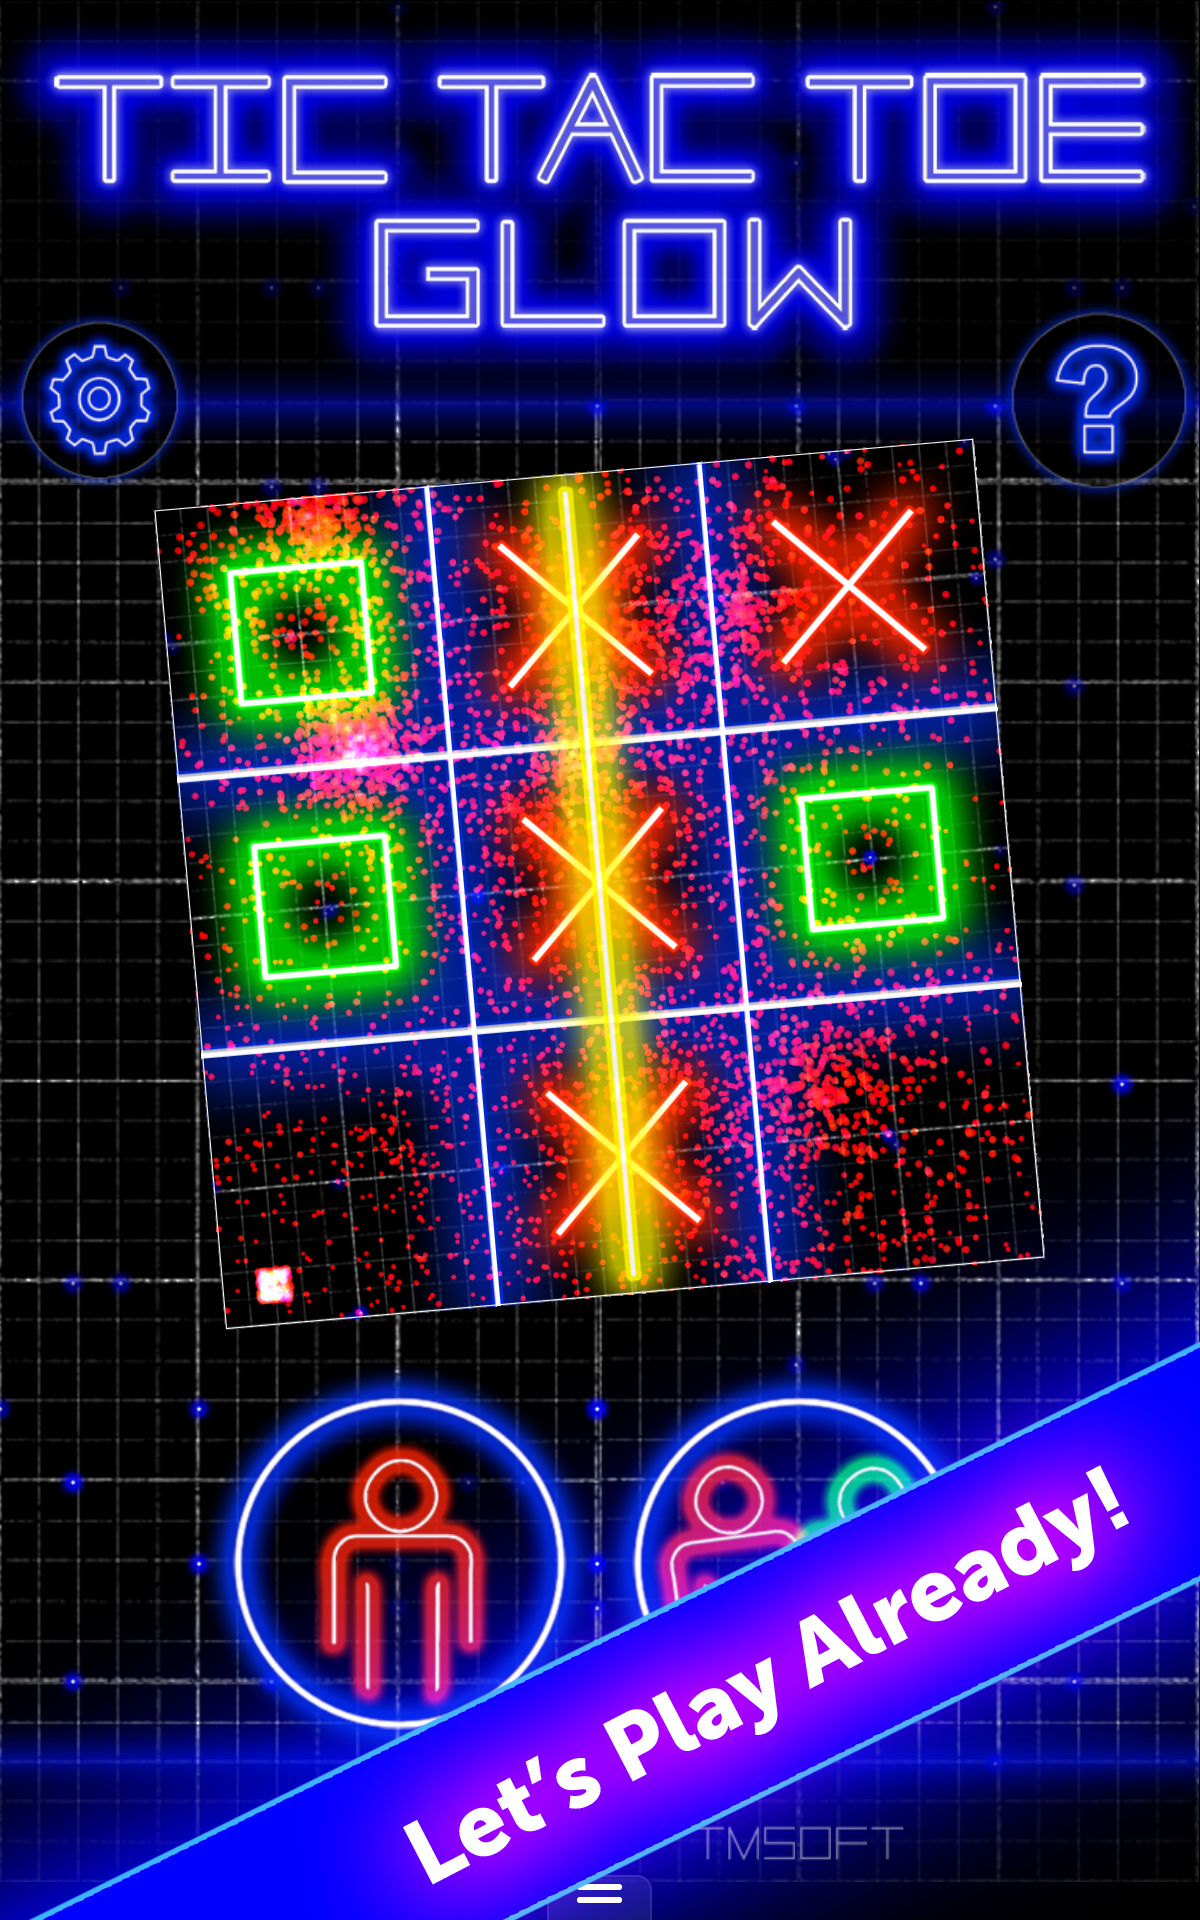 Amazon.com: Tic Tac Toe Glow by TMSOFT: Appstore for Android